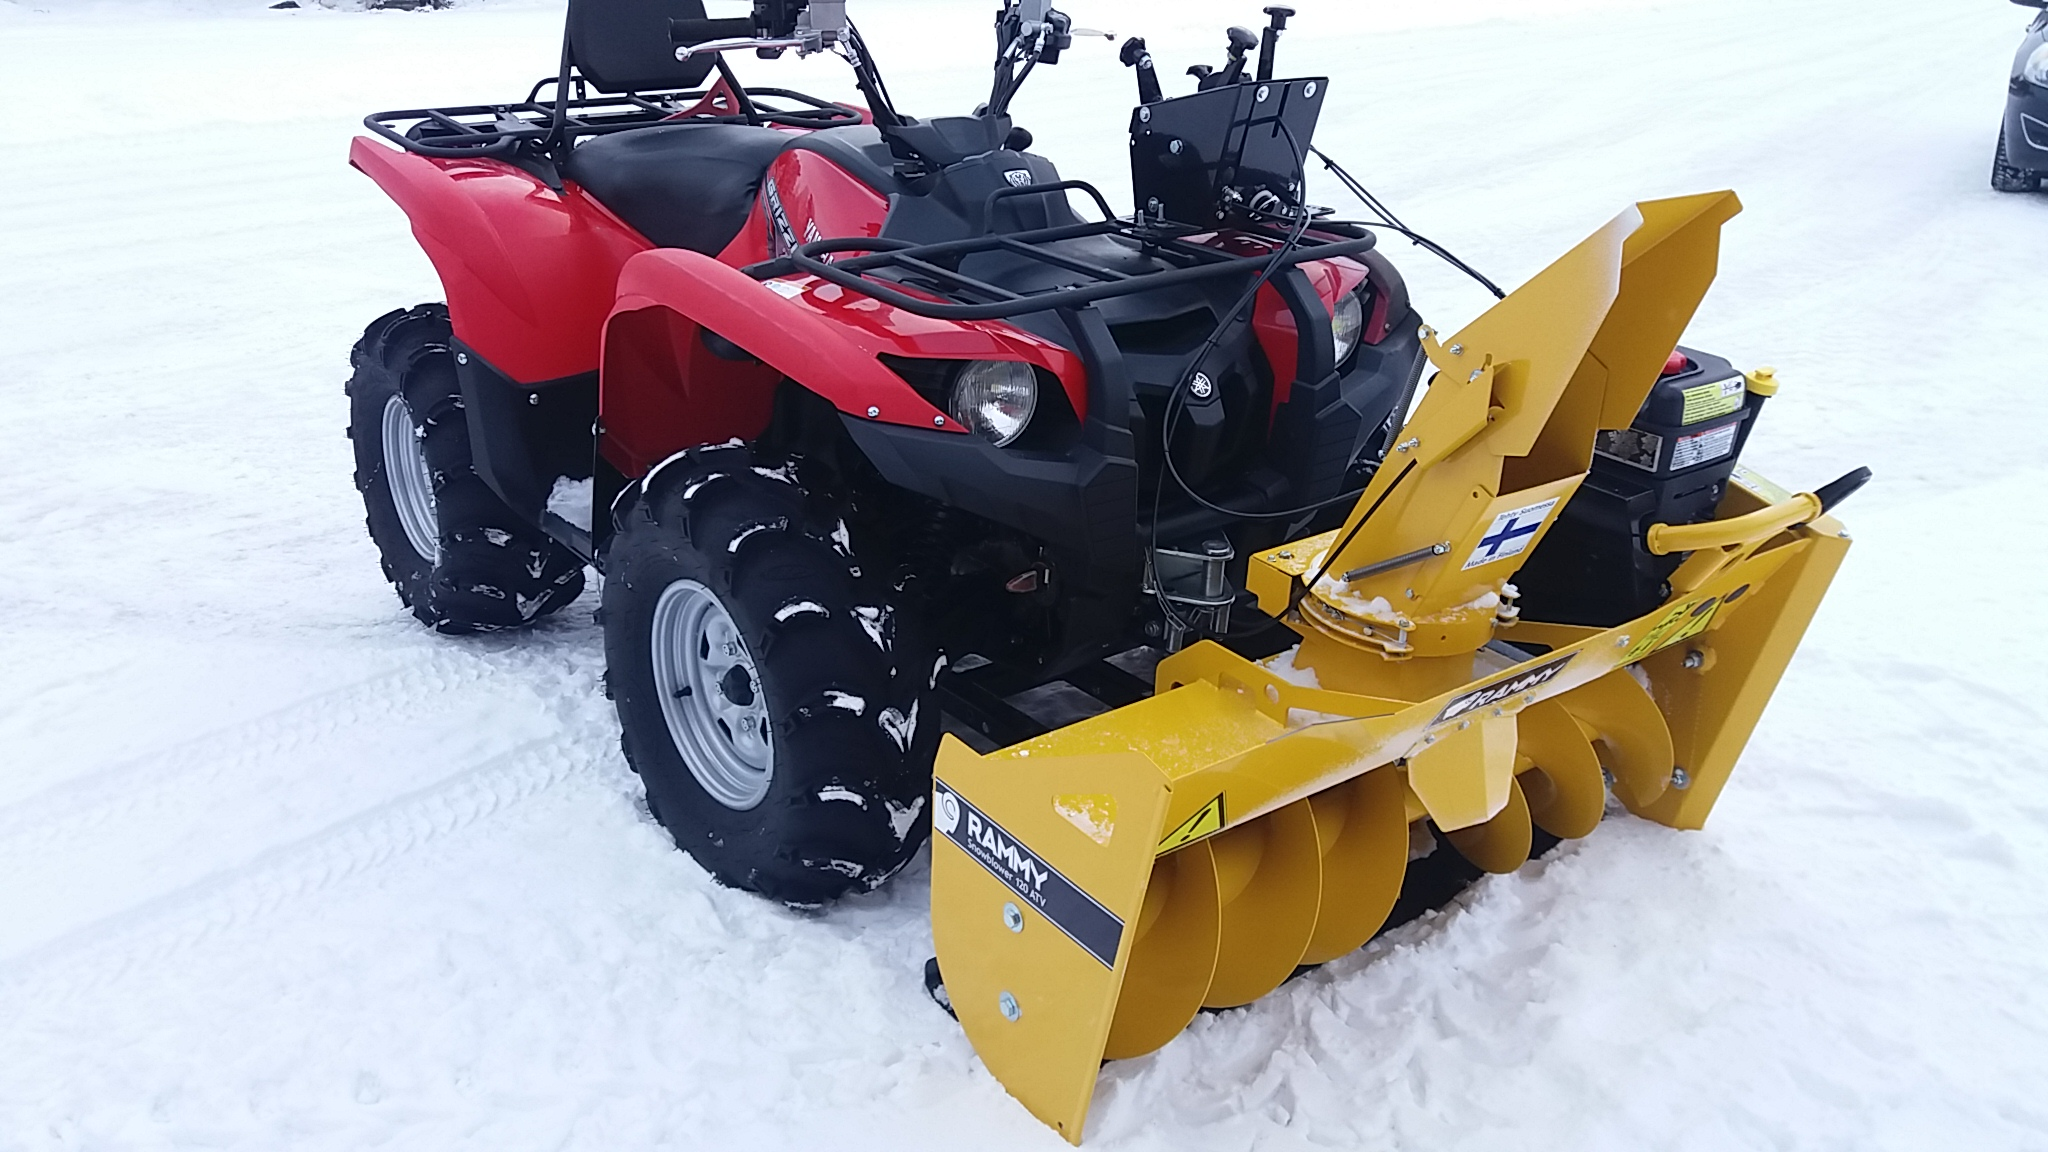 Yamaha Grizzly  In Snow